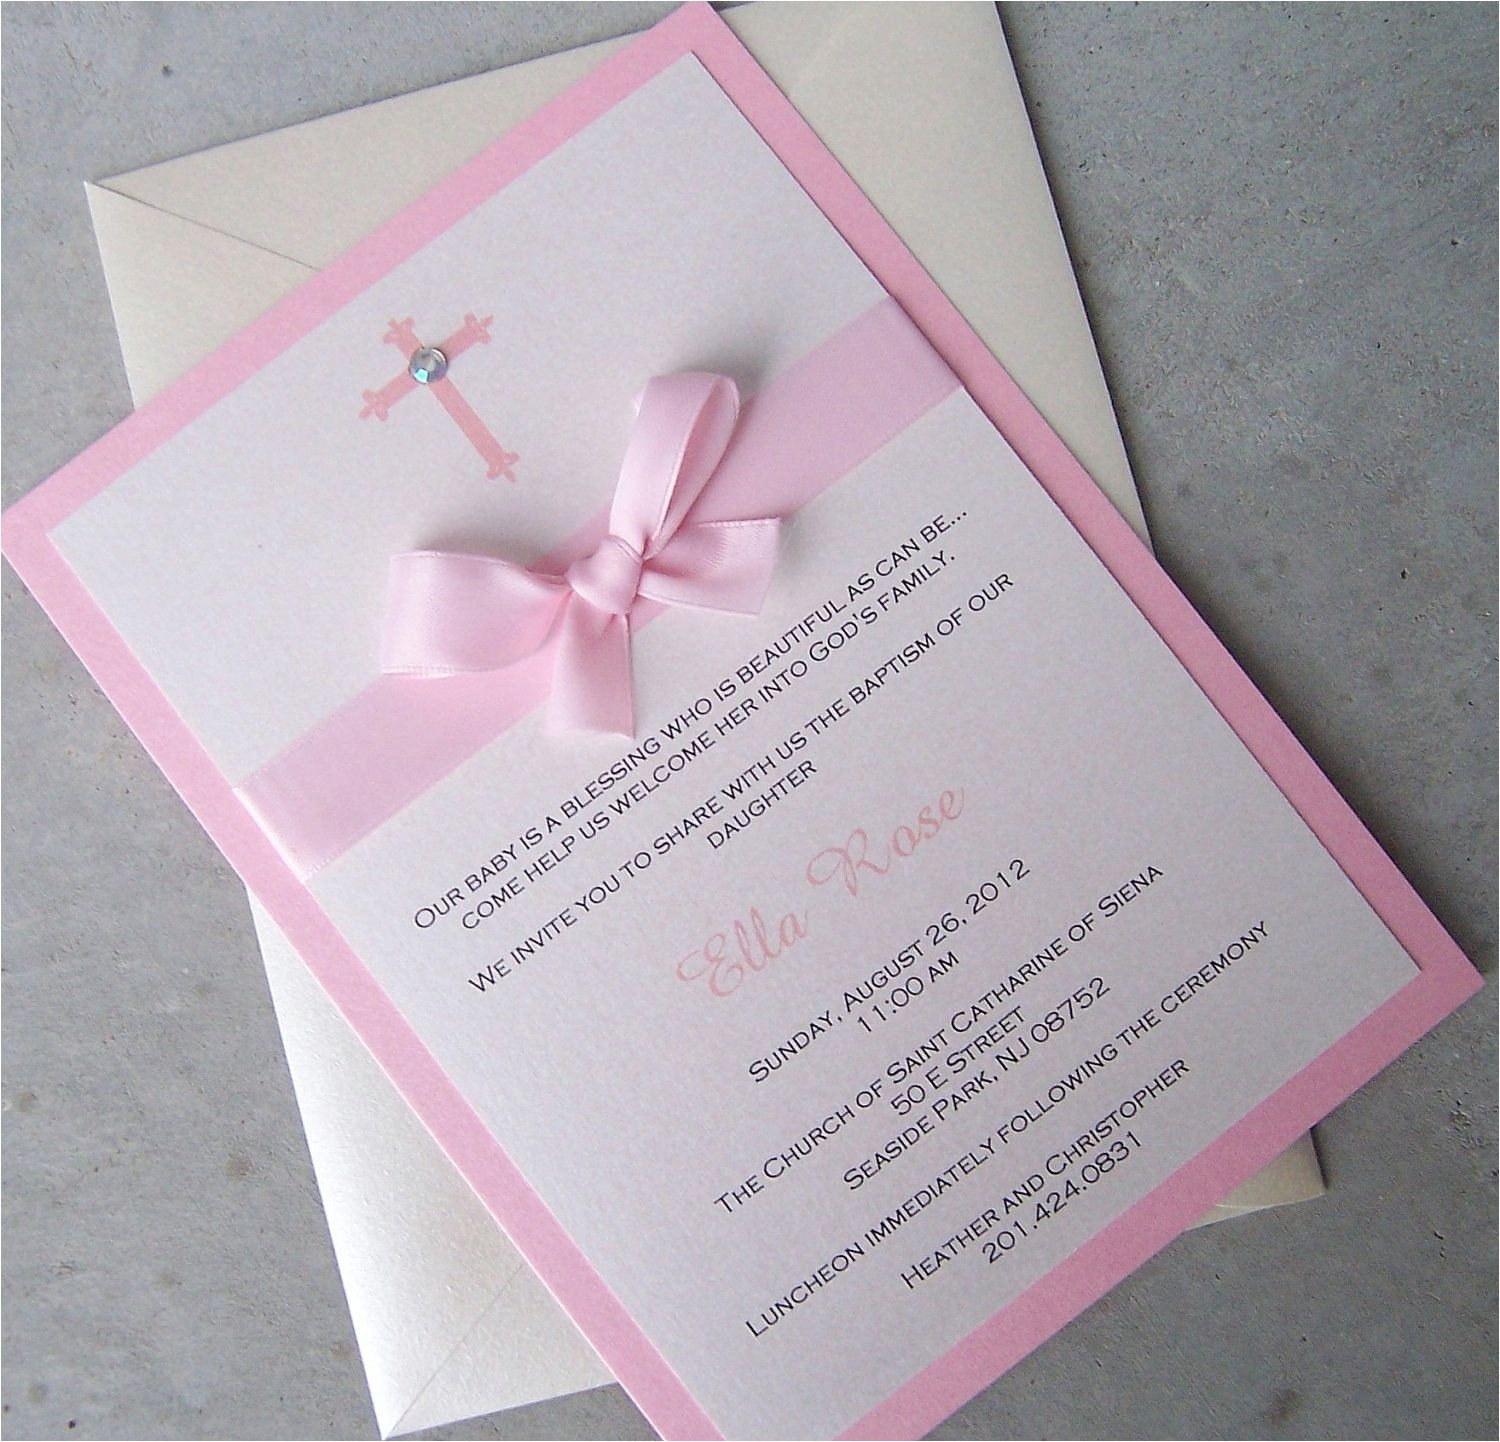 Diy Unique Baptismal Invitation Diy Baptism Invitations Diy Christening Invitations